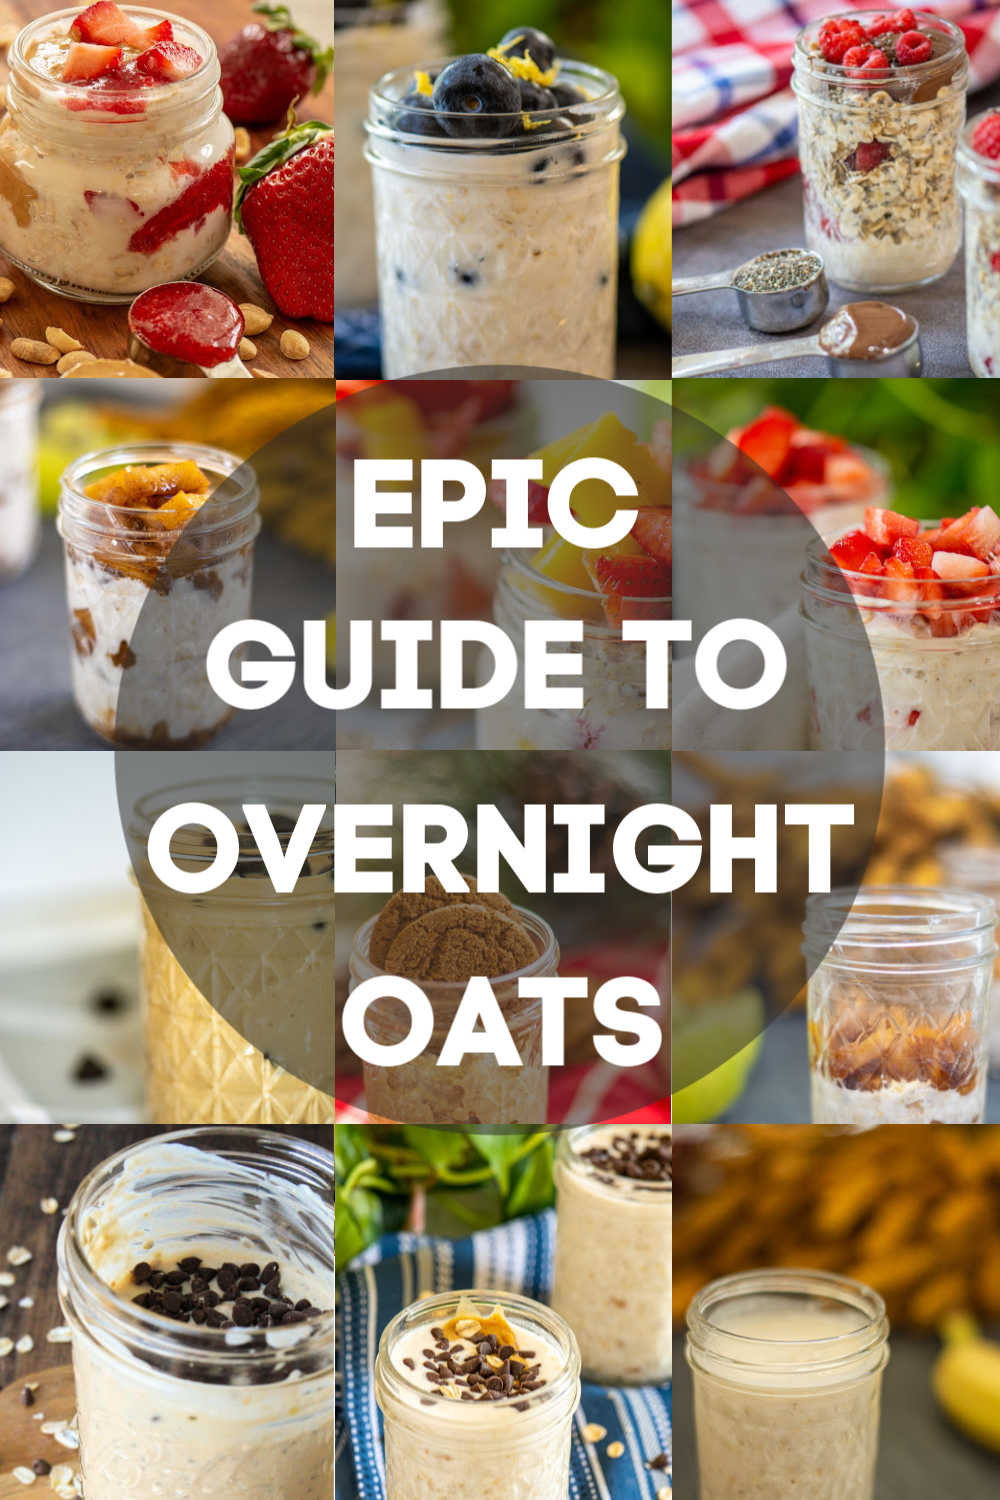 Everything You Ever Wanted to Know About How to Make Overnight Oats Recipes - Epic Guide to Overnight Oats